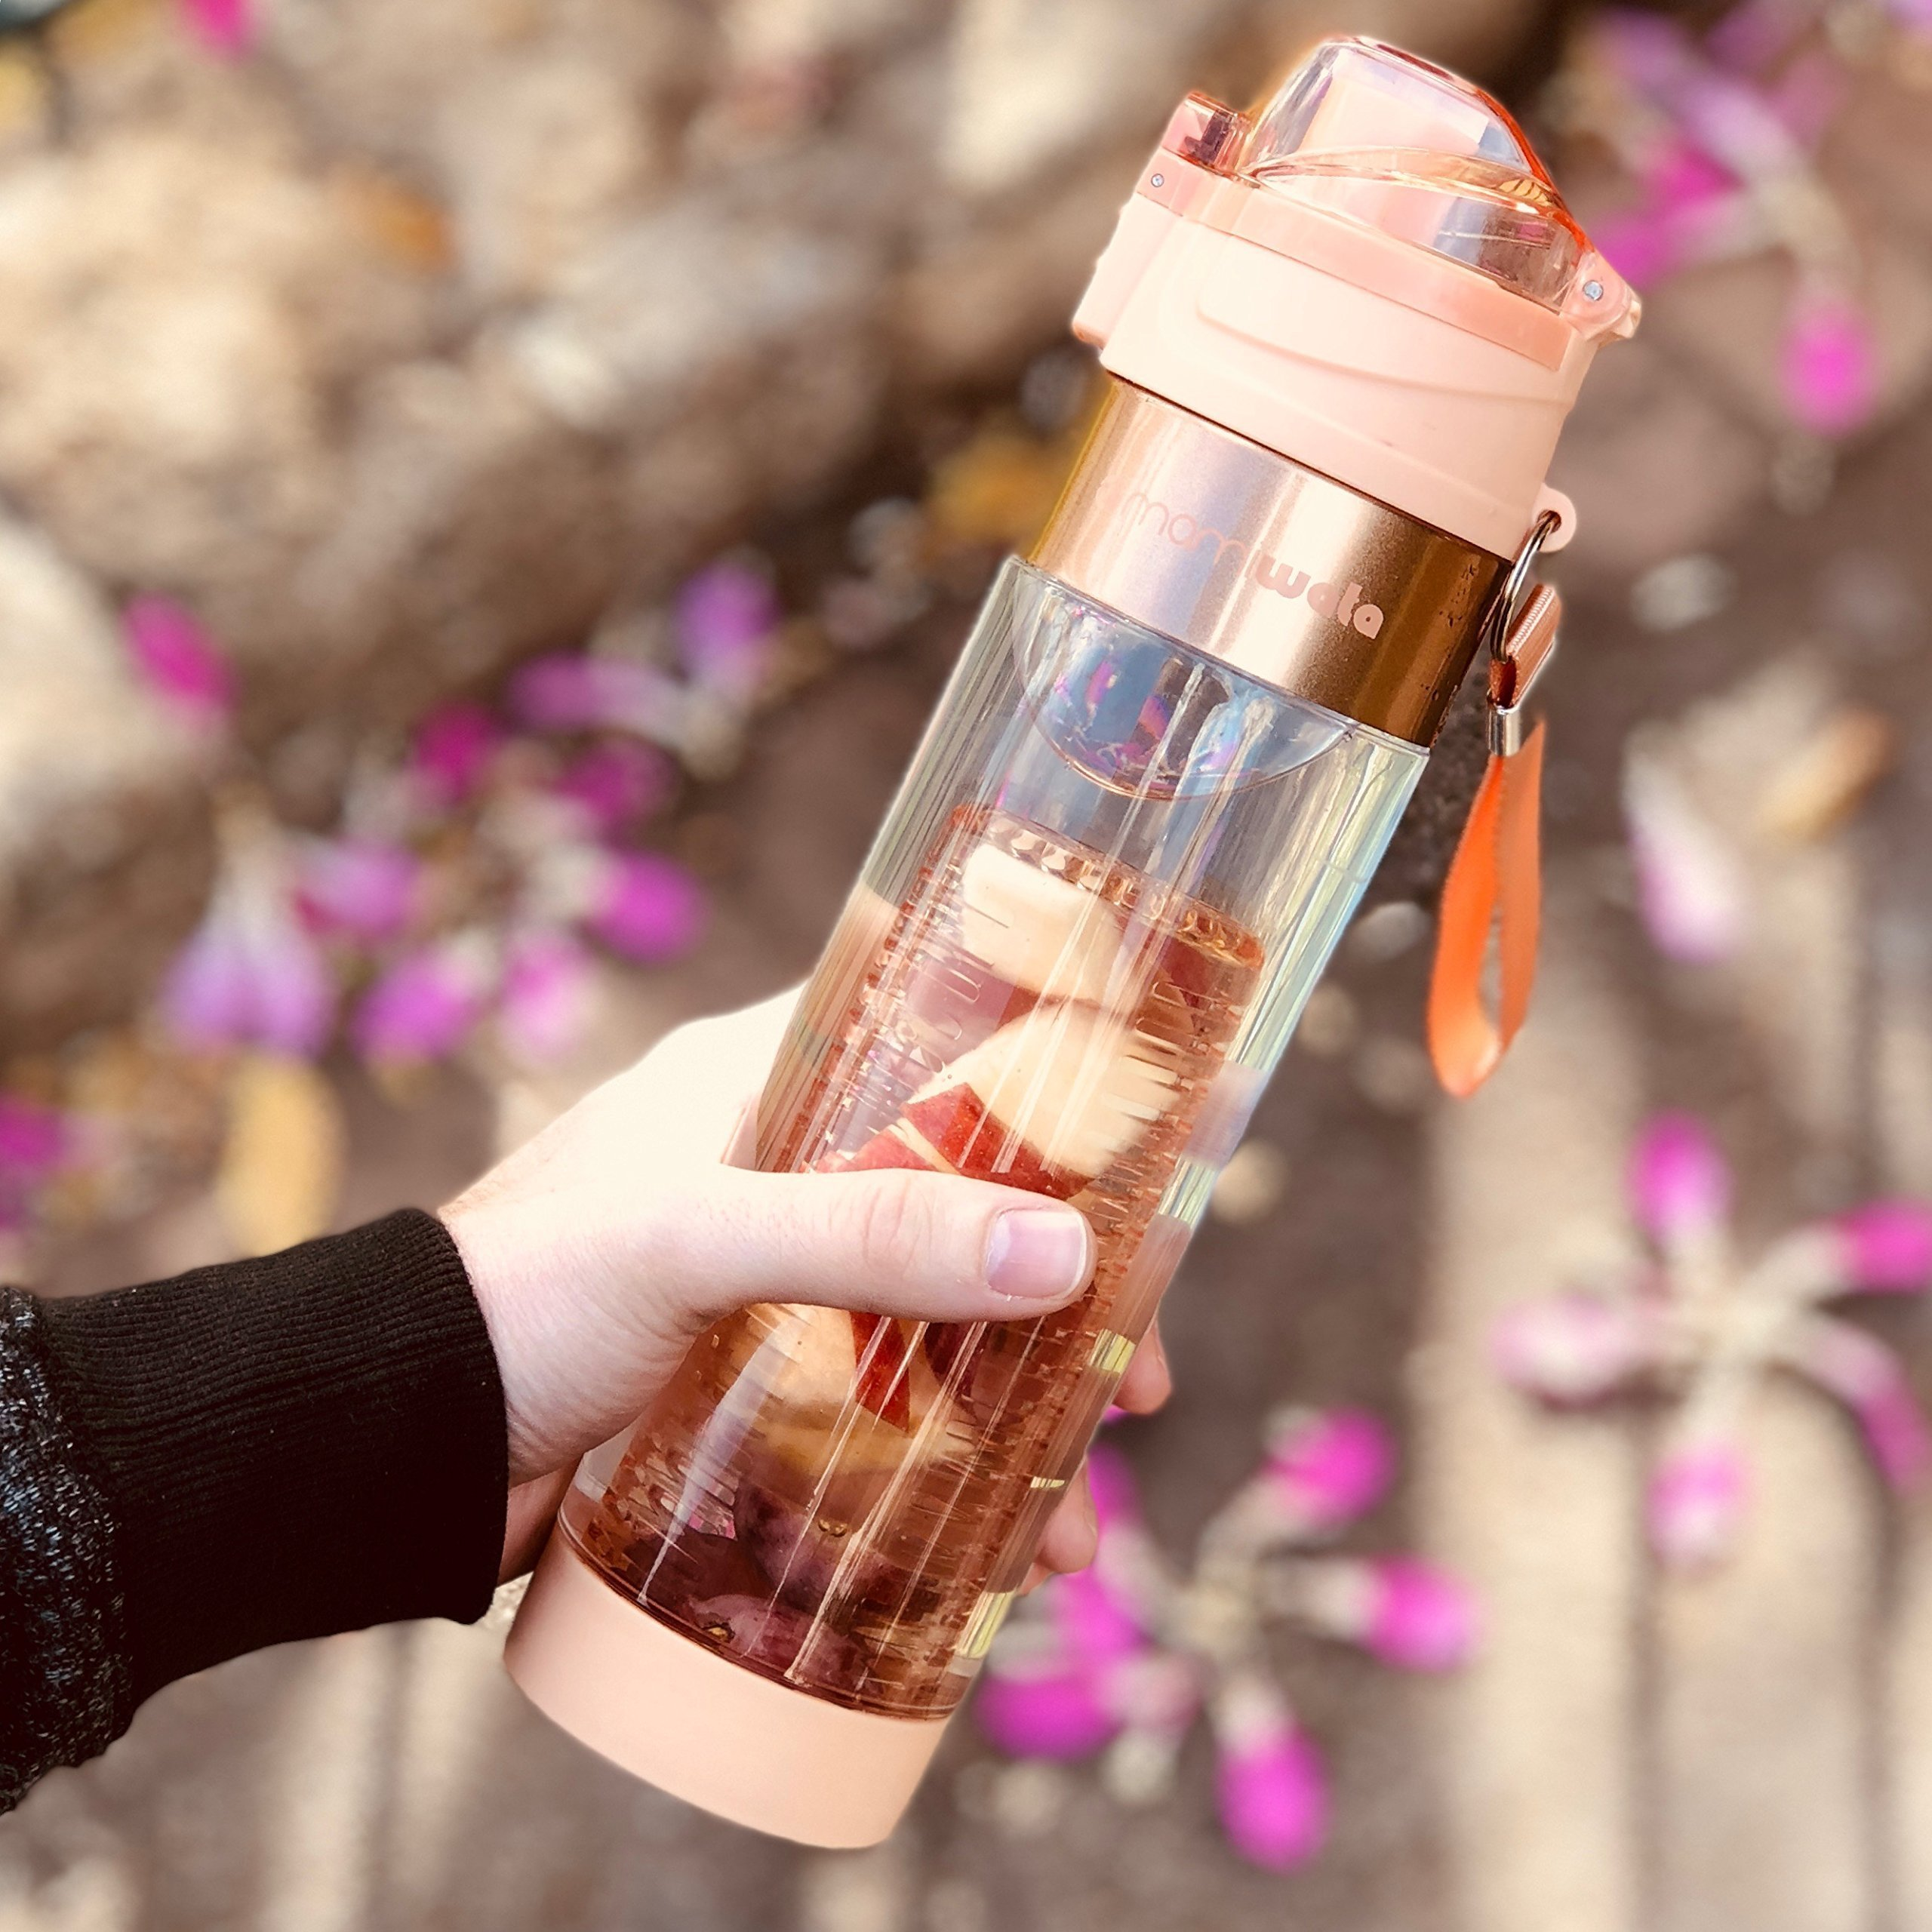 8a1346db91 MAMI WATA Fruit Infuser Water Bottle – Create Naturally Flavoured Fruit Infused  Water – Unique Stylish Design, Beautiful Gift Box, Insulated Sleeve, ...